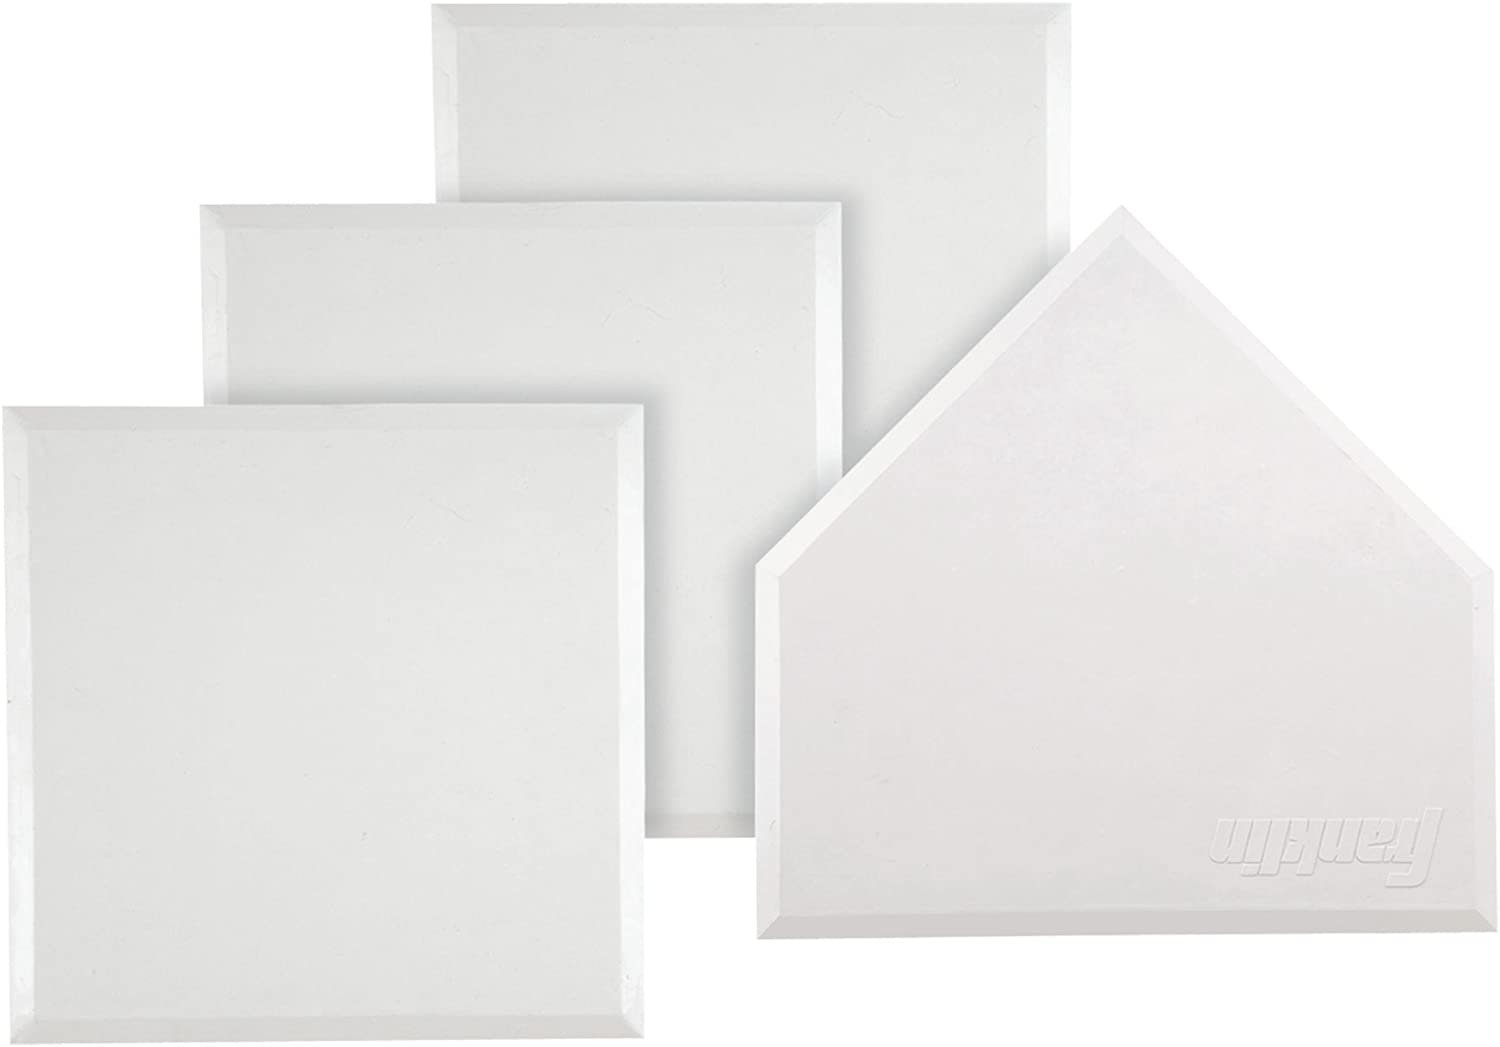 B00004T1JW Franklin Sports MLB Heavy Duty Rubber Base Set - 4 White Throw Down Style Bases - Baseball, Softball, or Kickball Home Plate and Bases with Waffle Bottom Construction 618wjsBMsjL